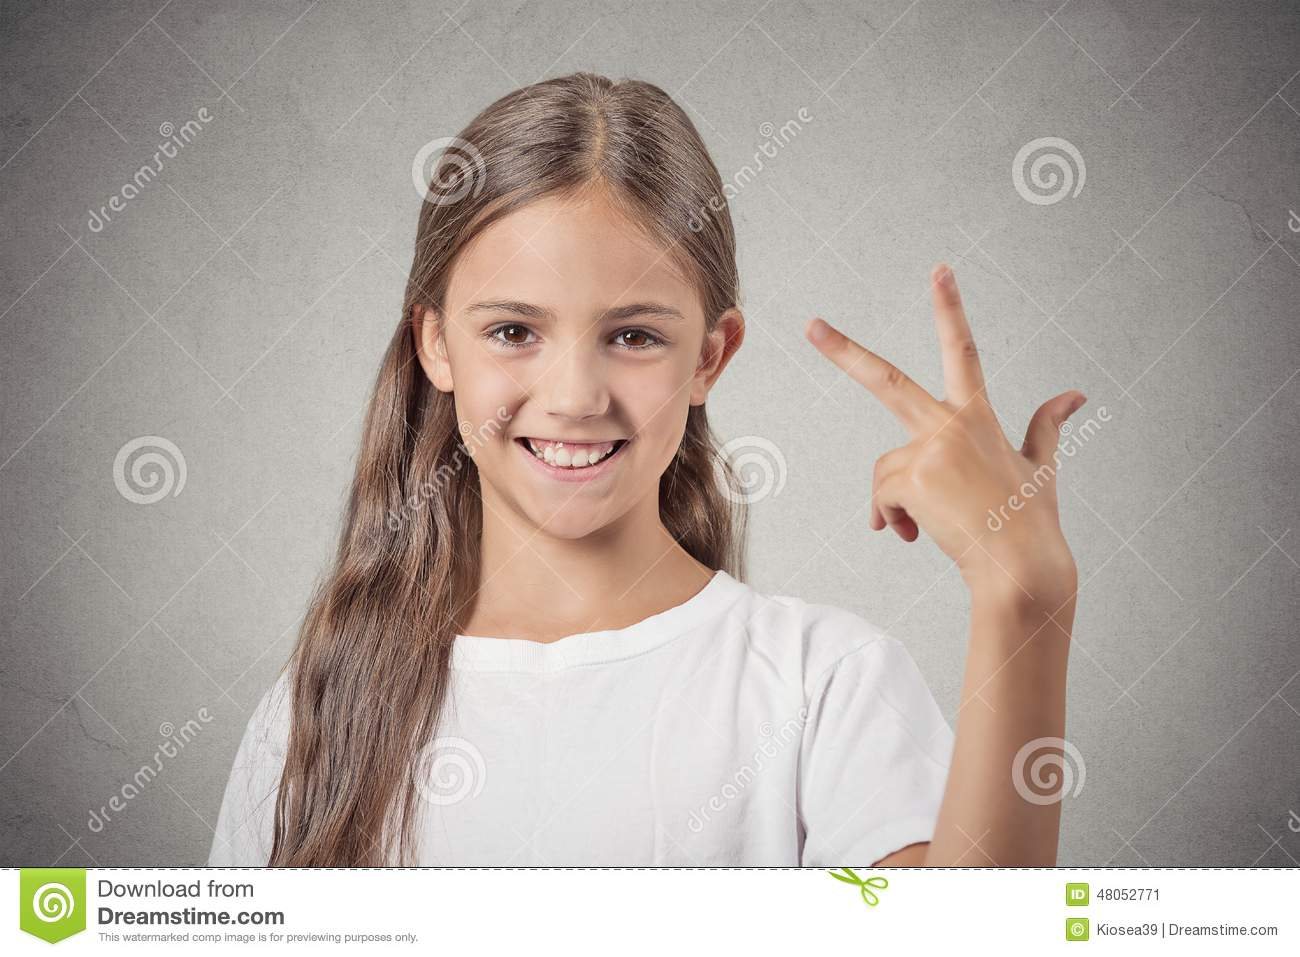 What young teen girl fingers